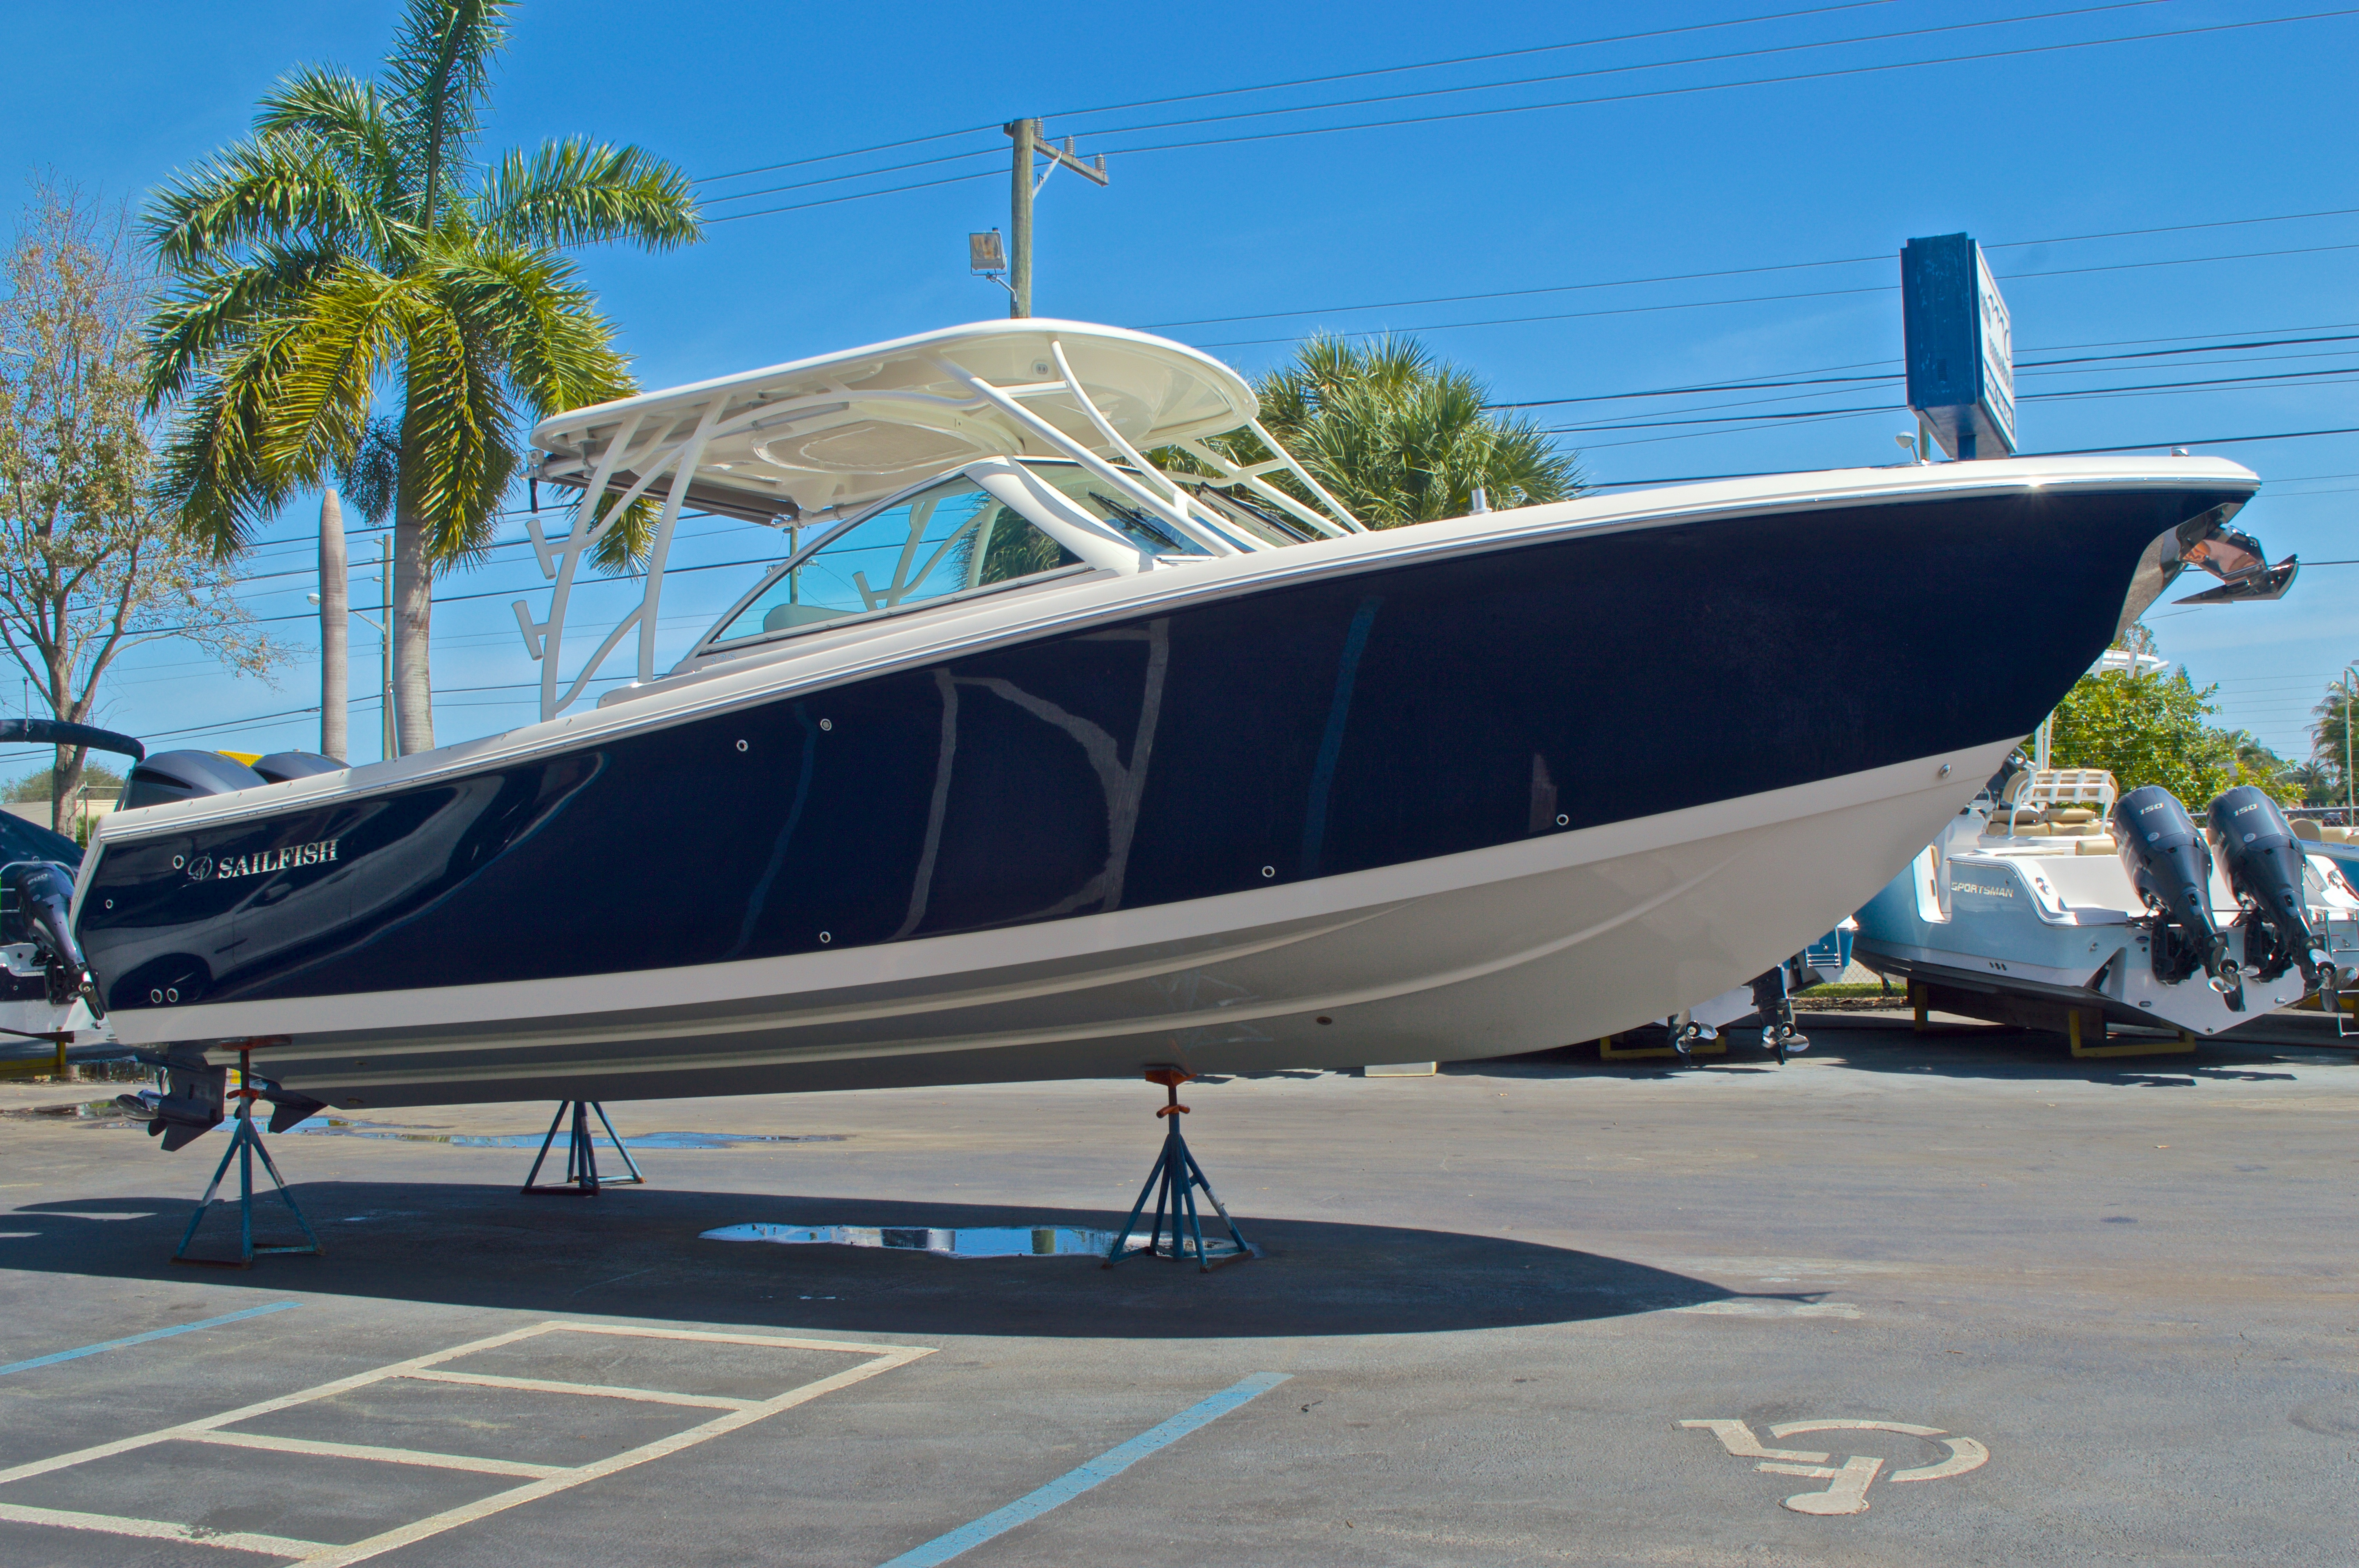 Thumbnail 5 for New 2016 Sailfish 325 Dual Console boat for sale in West Palm Beach, FL